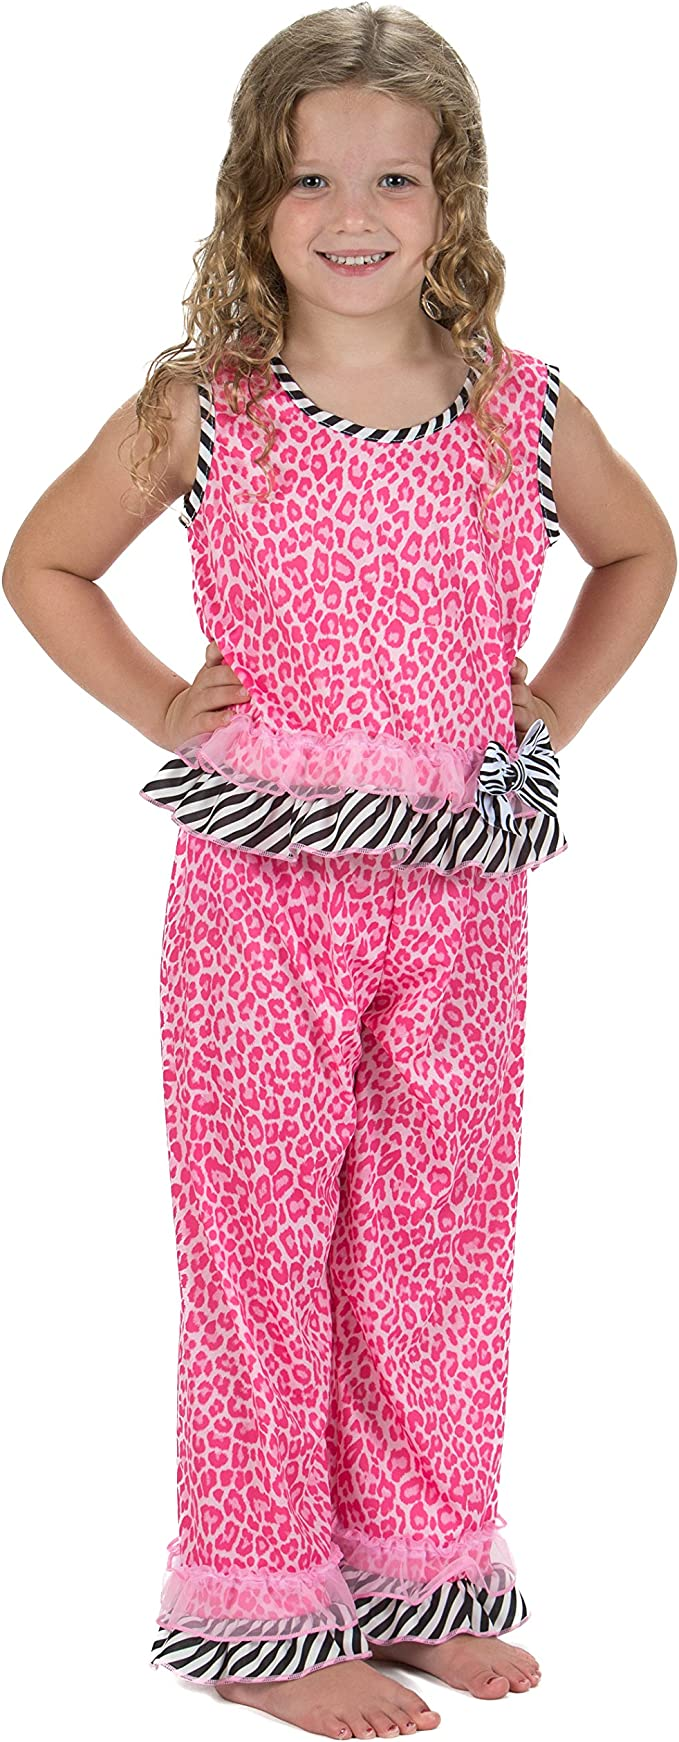 Laura Dare Dreamy Leopard Pajamas for Toddlers and Girls Made in the USA